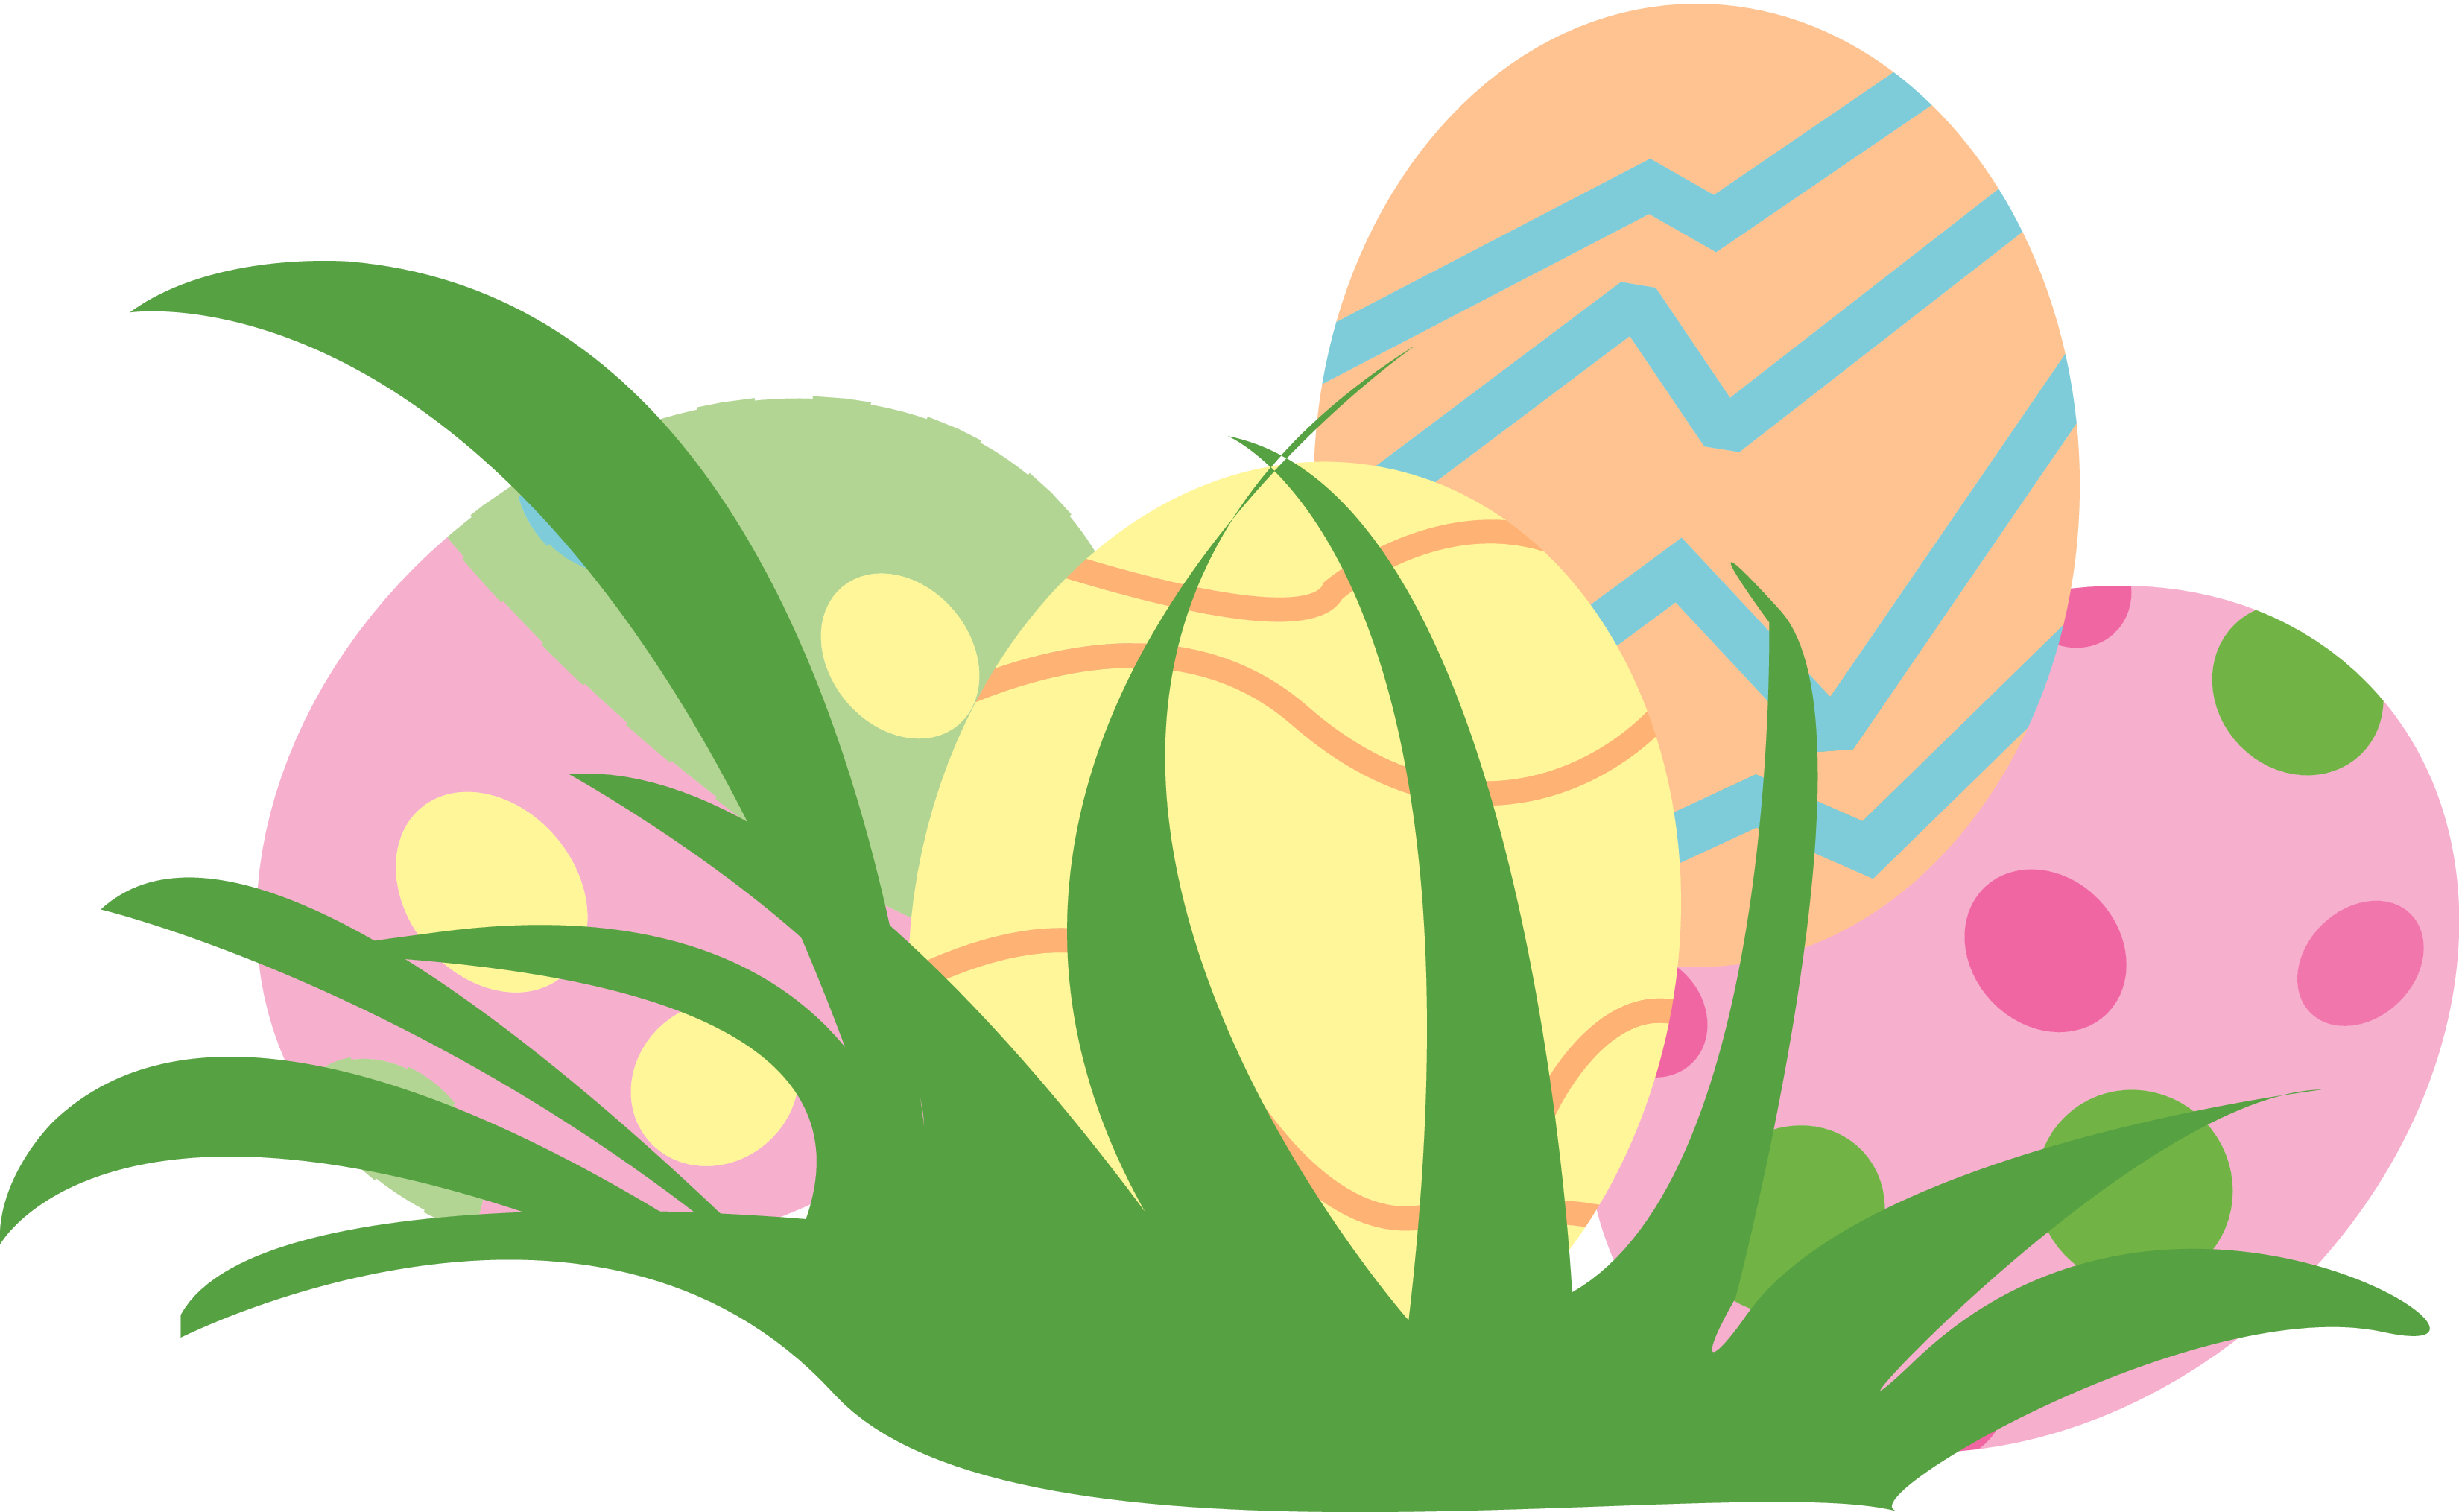 Easter 2017 clipart 1 » Clipart Station.